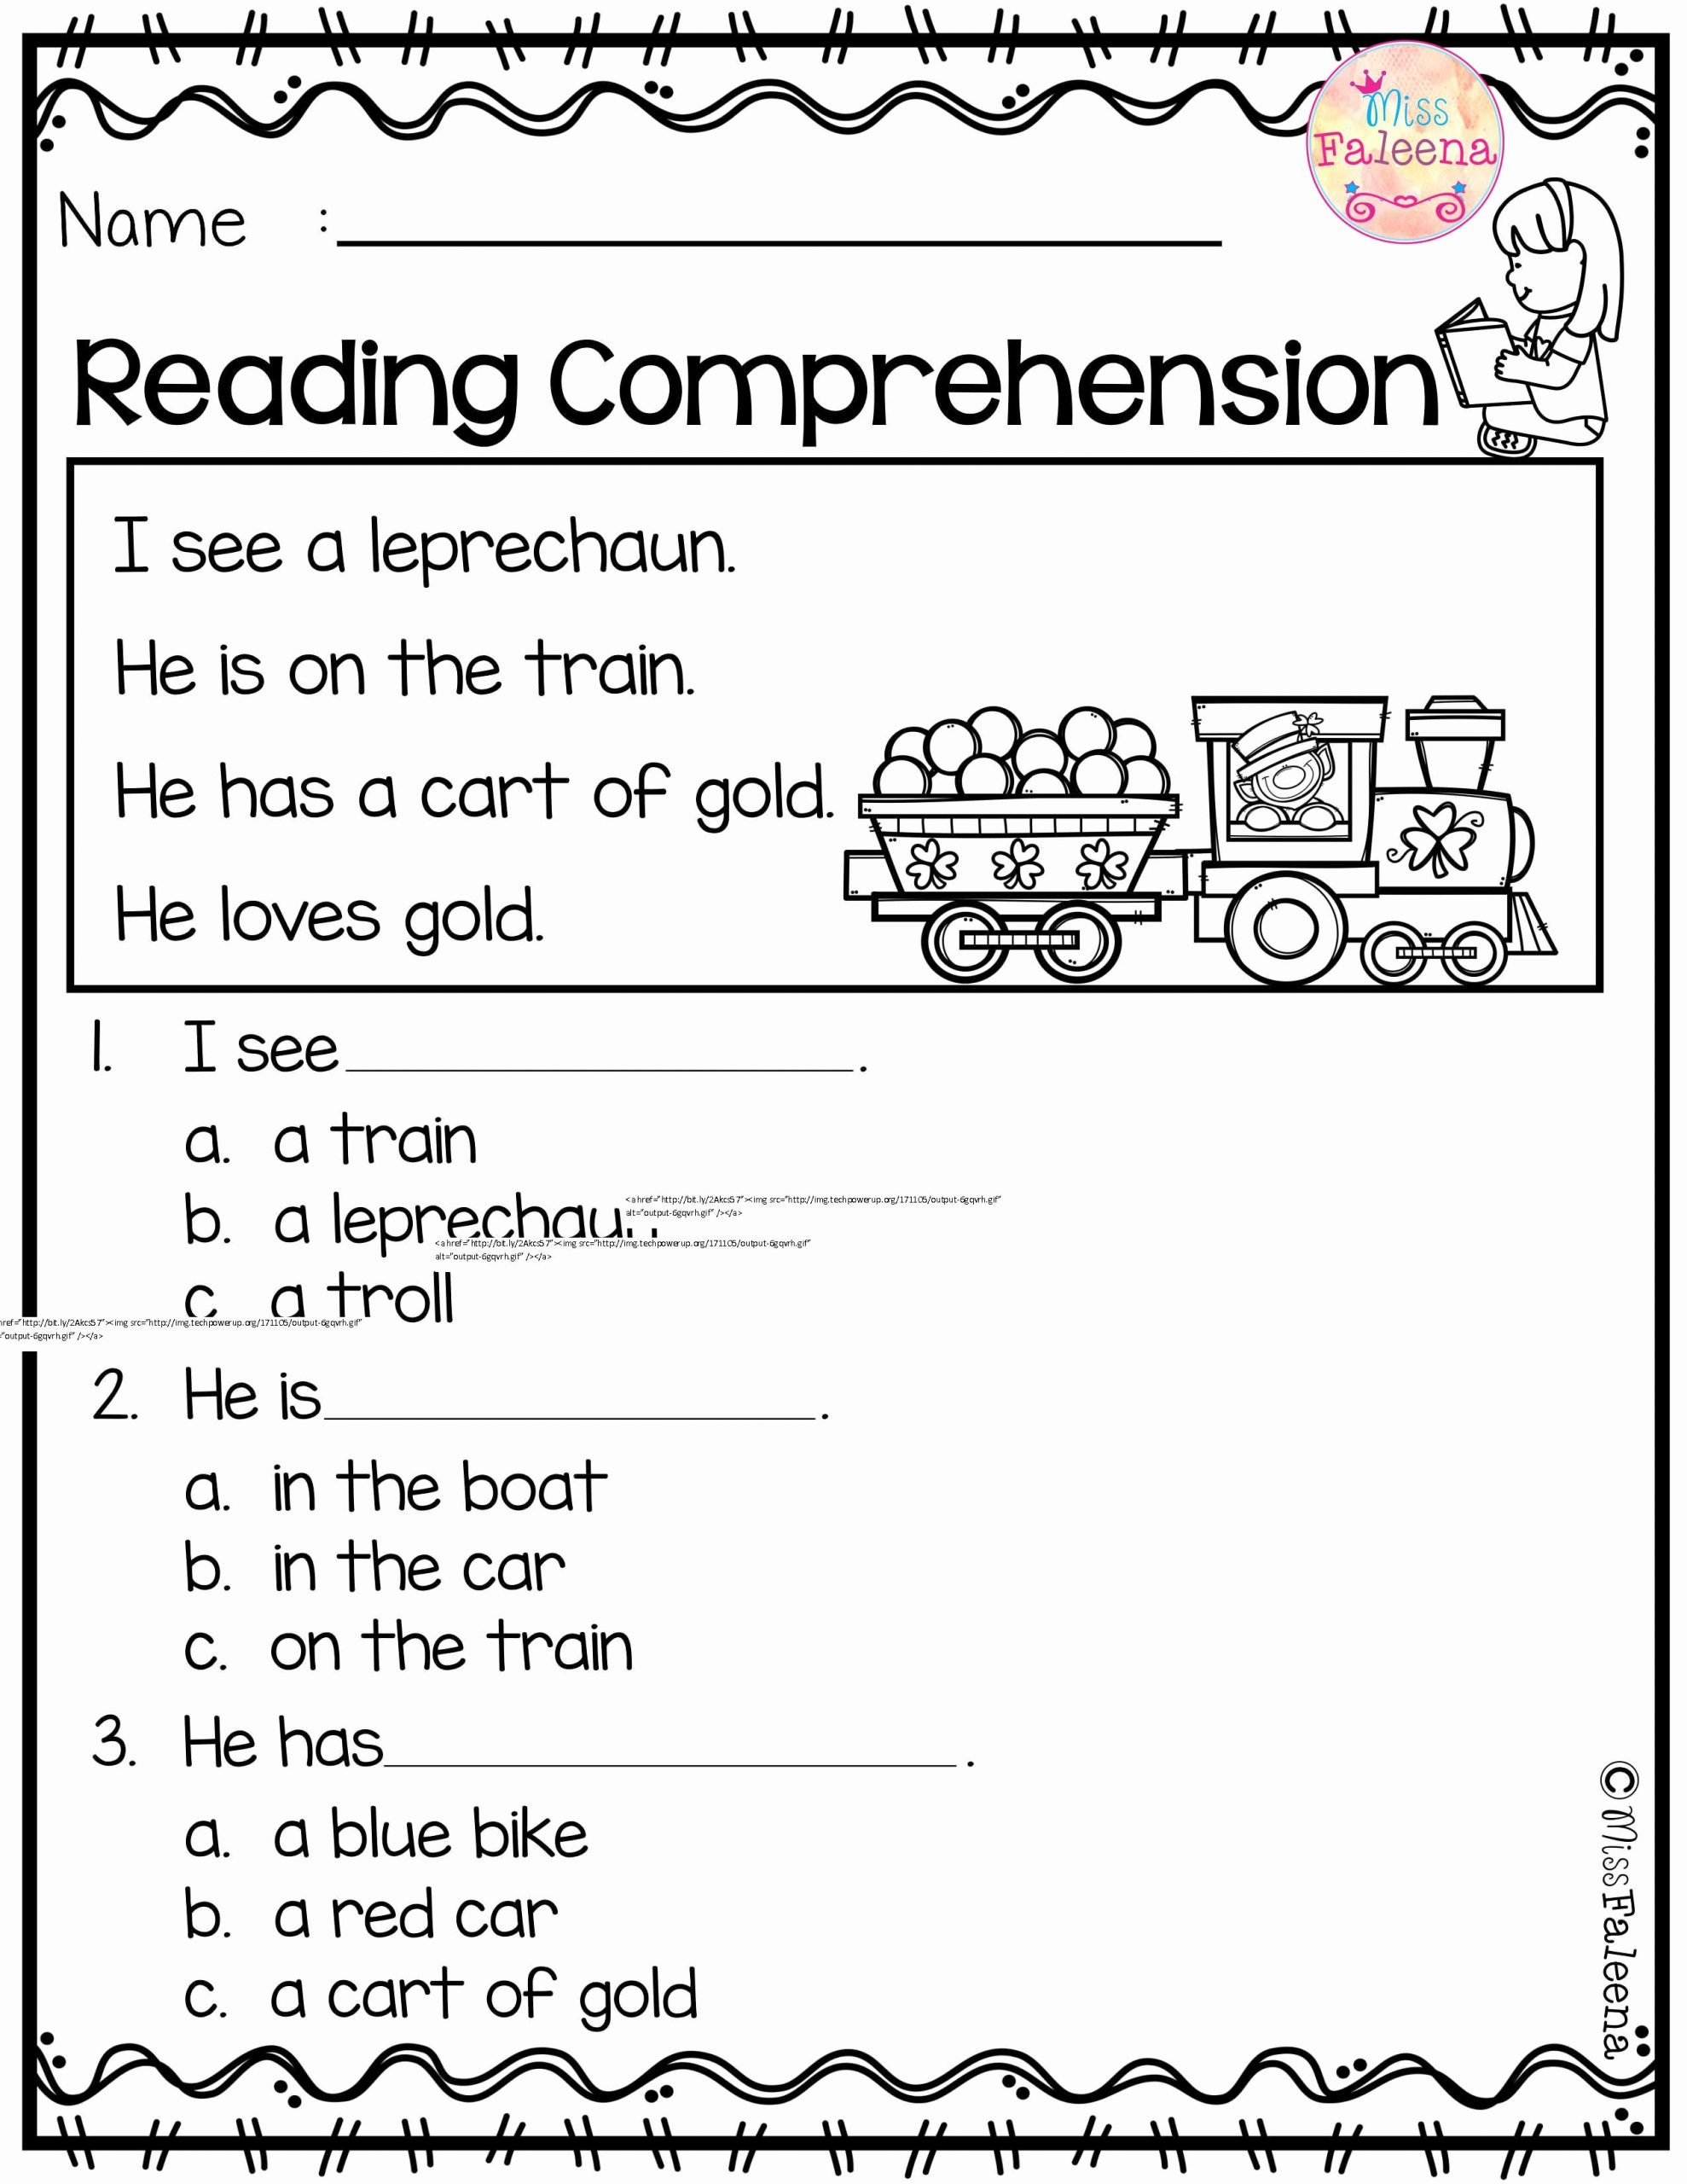 Comprehension Worksheets for Preschoolers New March Reading Prehension is Suitable for Kindergarten